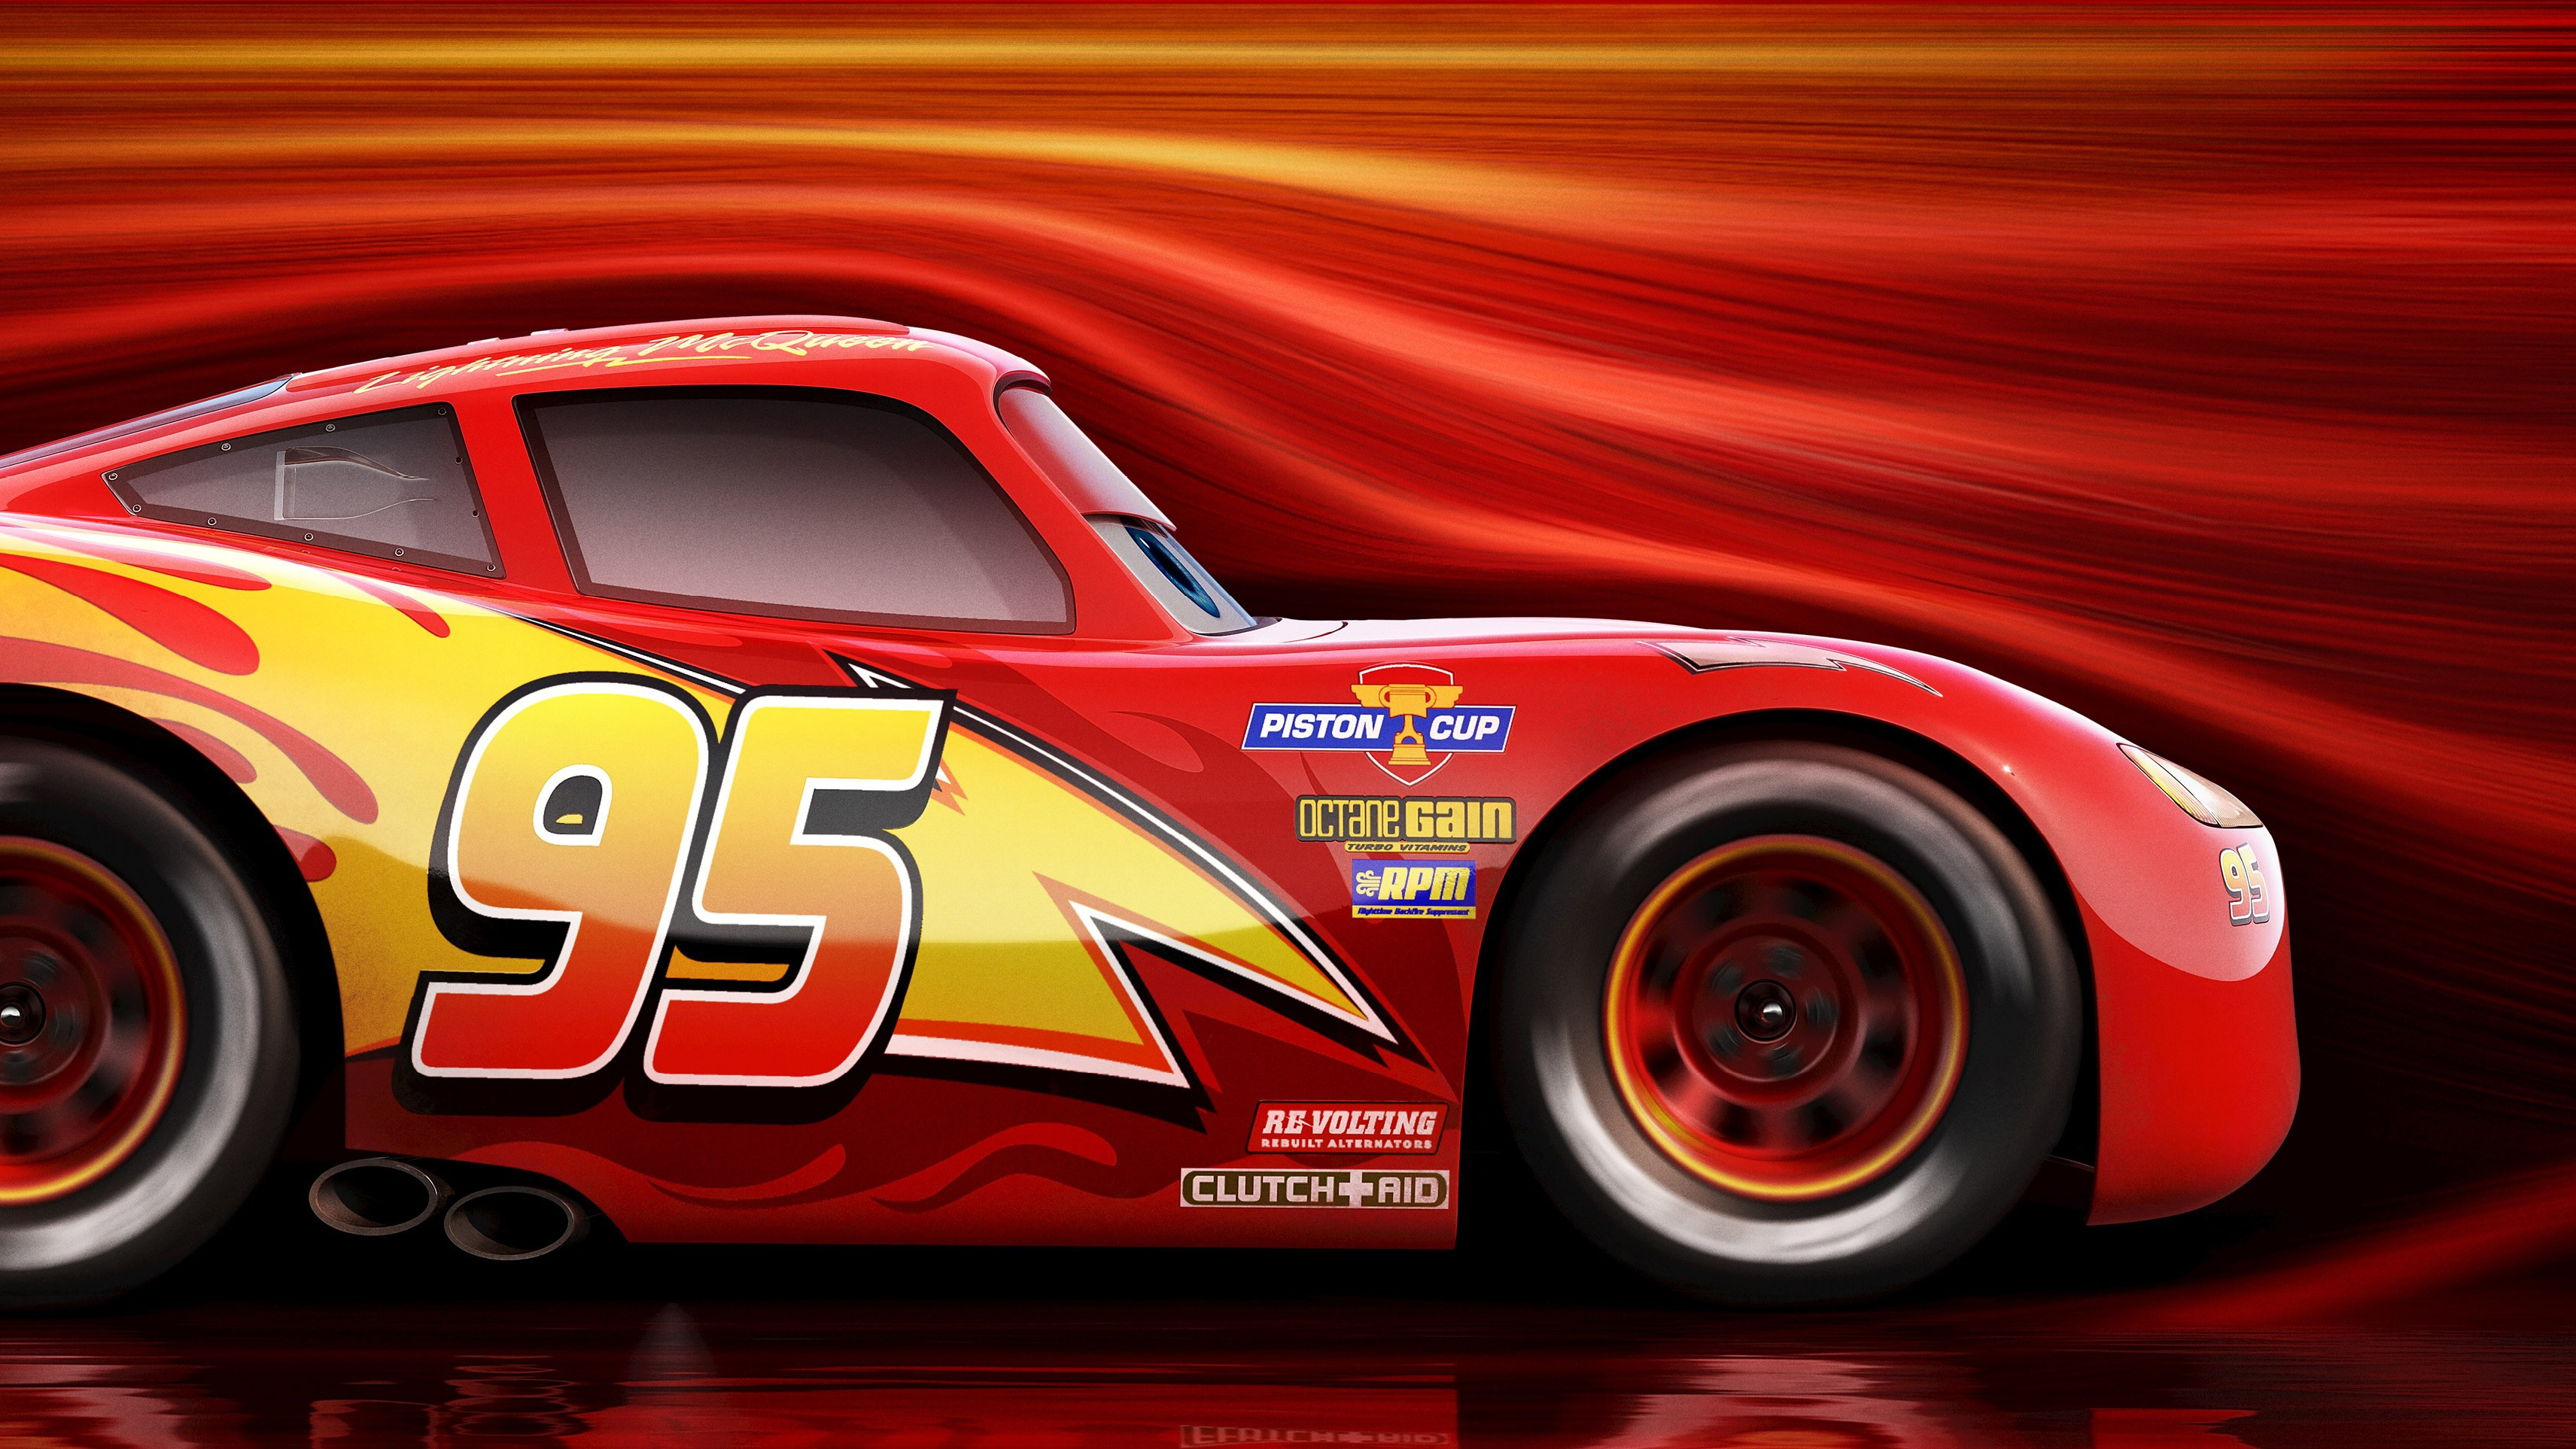 30 lightning mcqueen hd wallpapers | background images - wallpaper abyss